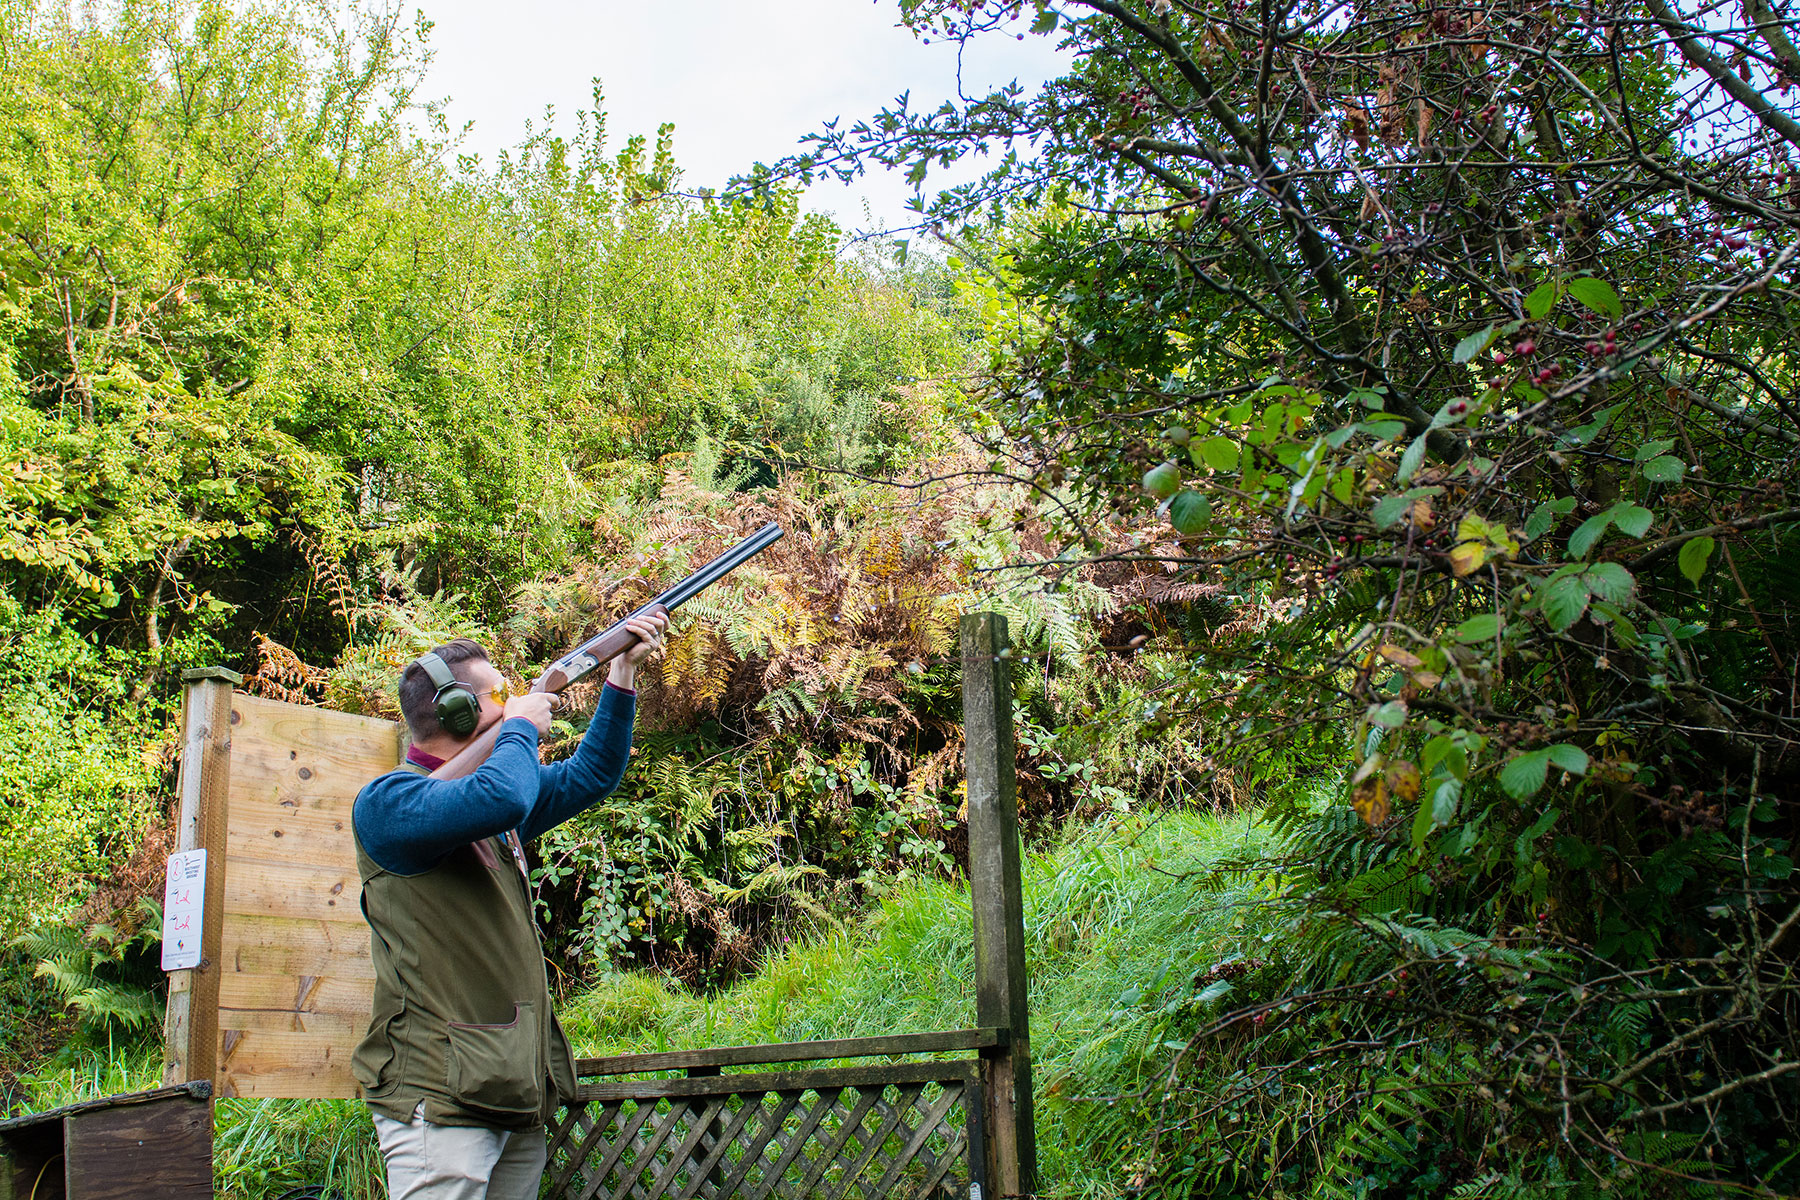 Beginners shooting Devon